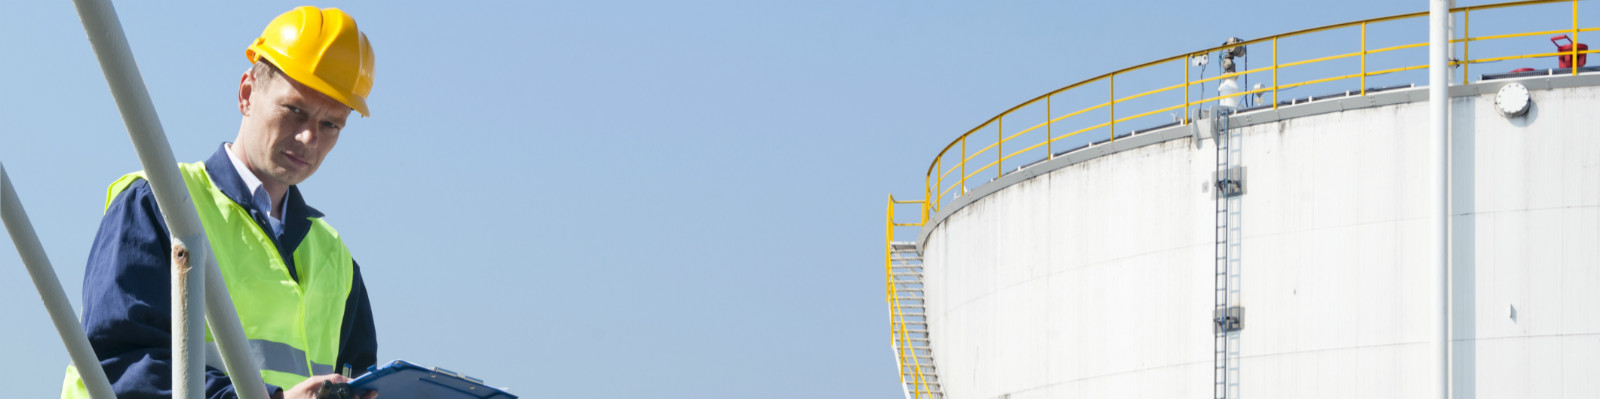 safety-audits-and-inspections-banner.jpg